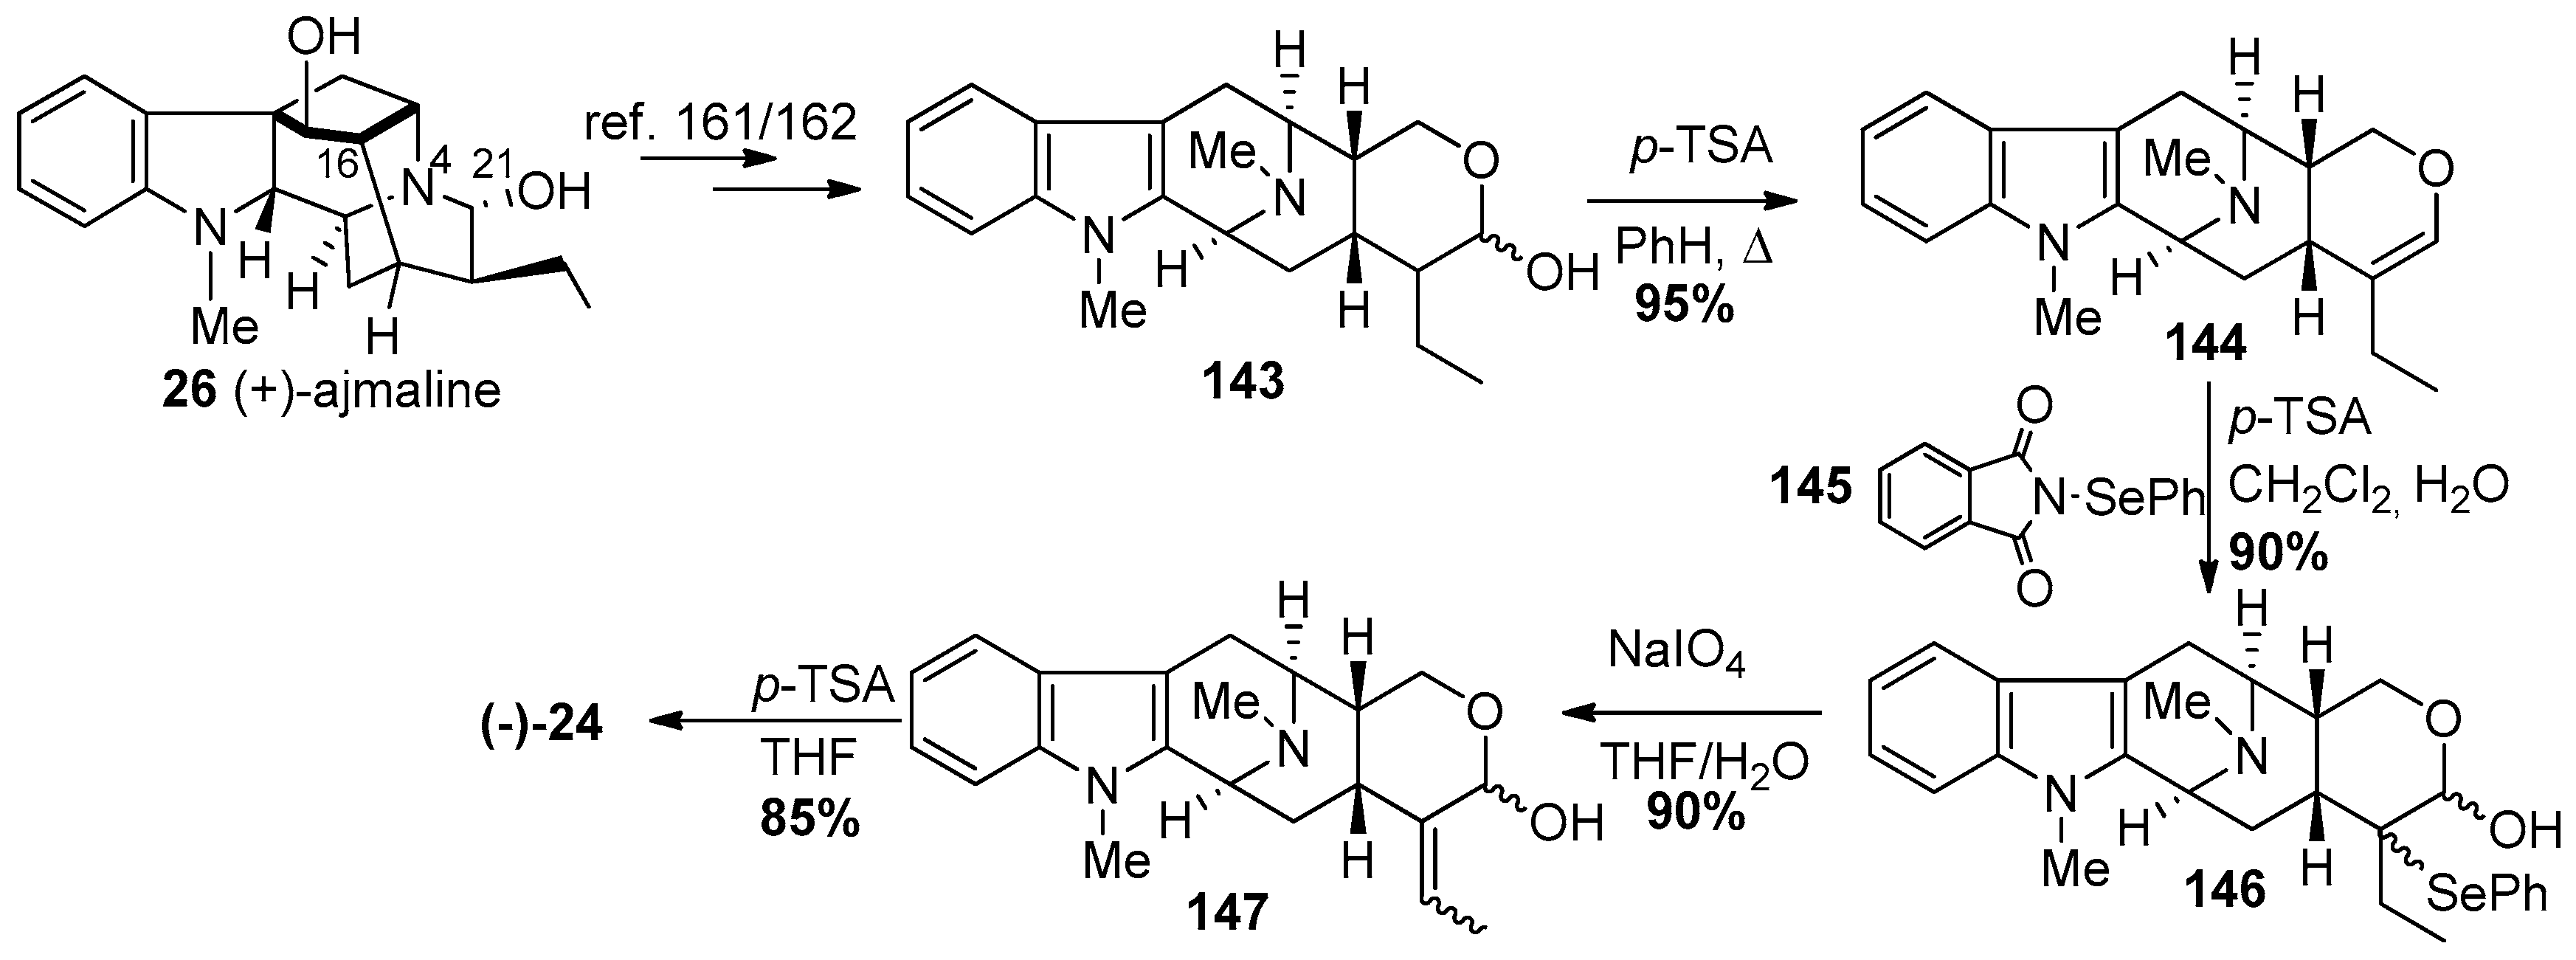 Molecules 21 01525 sch020